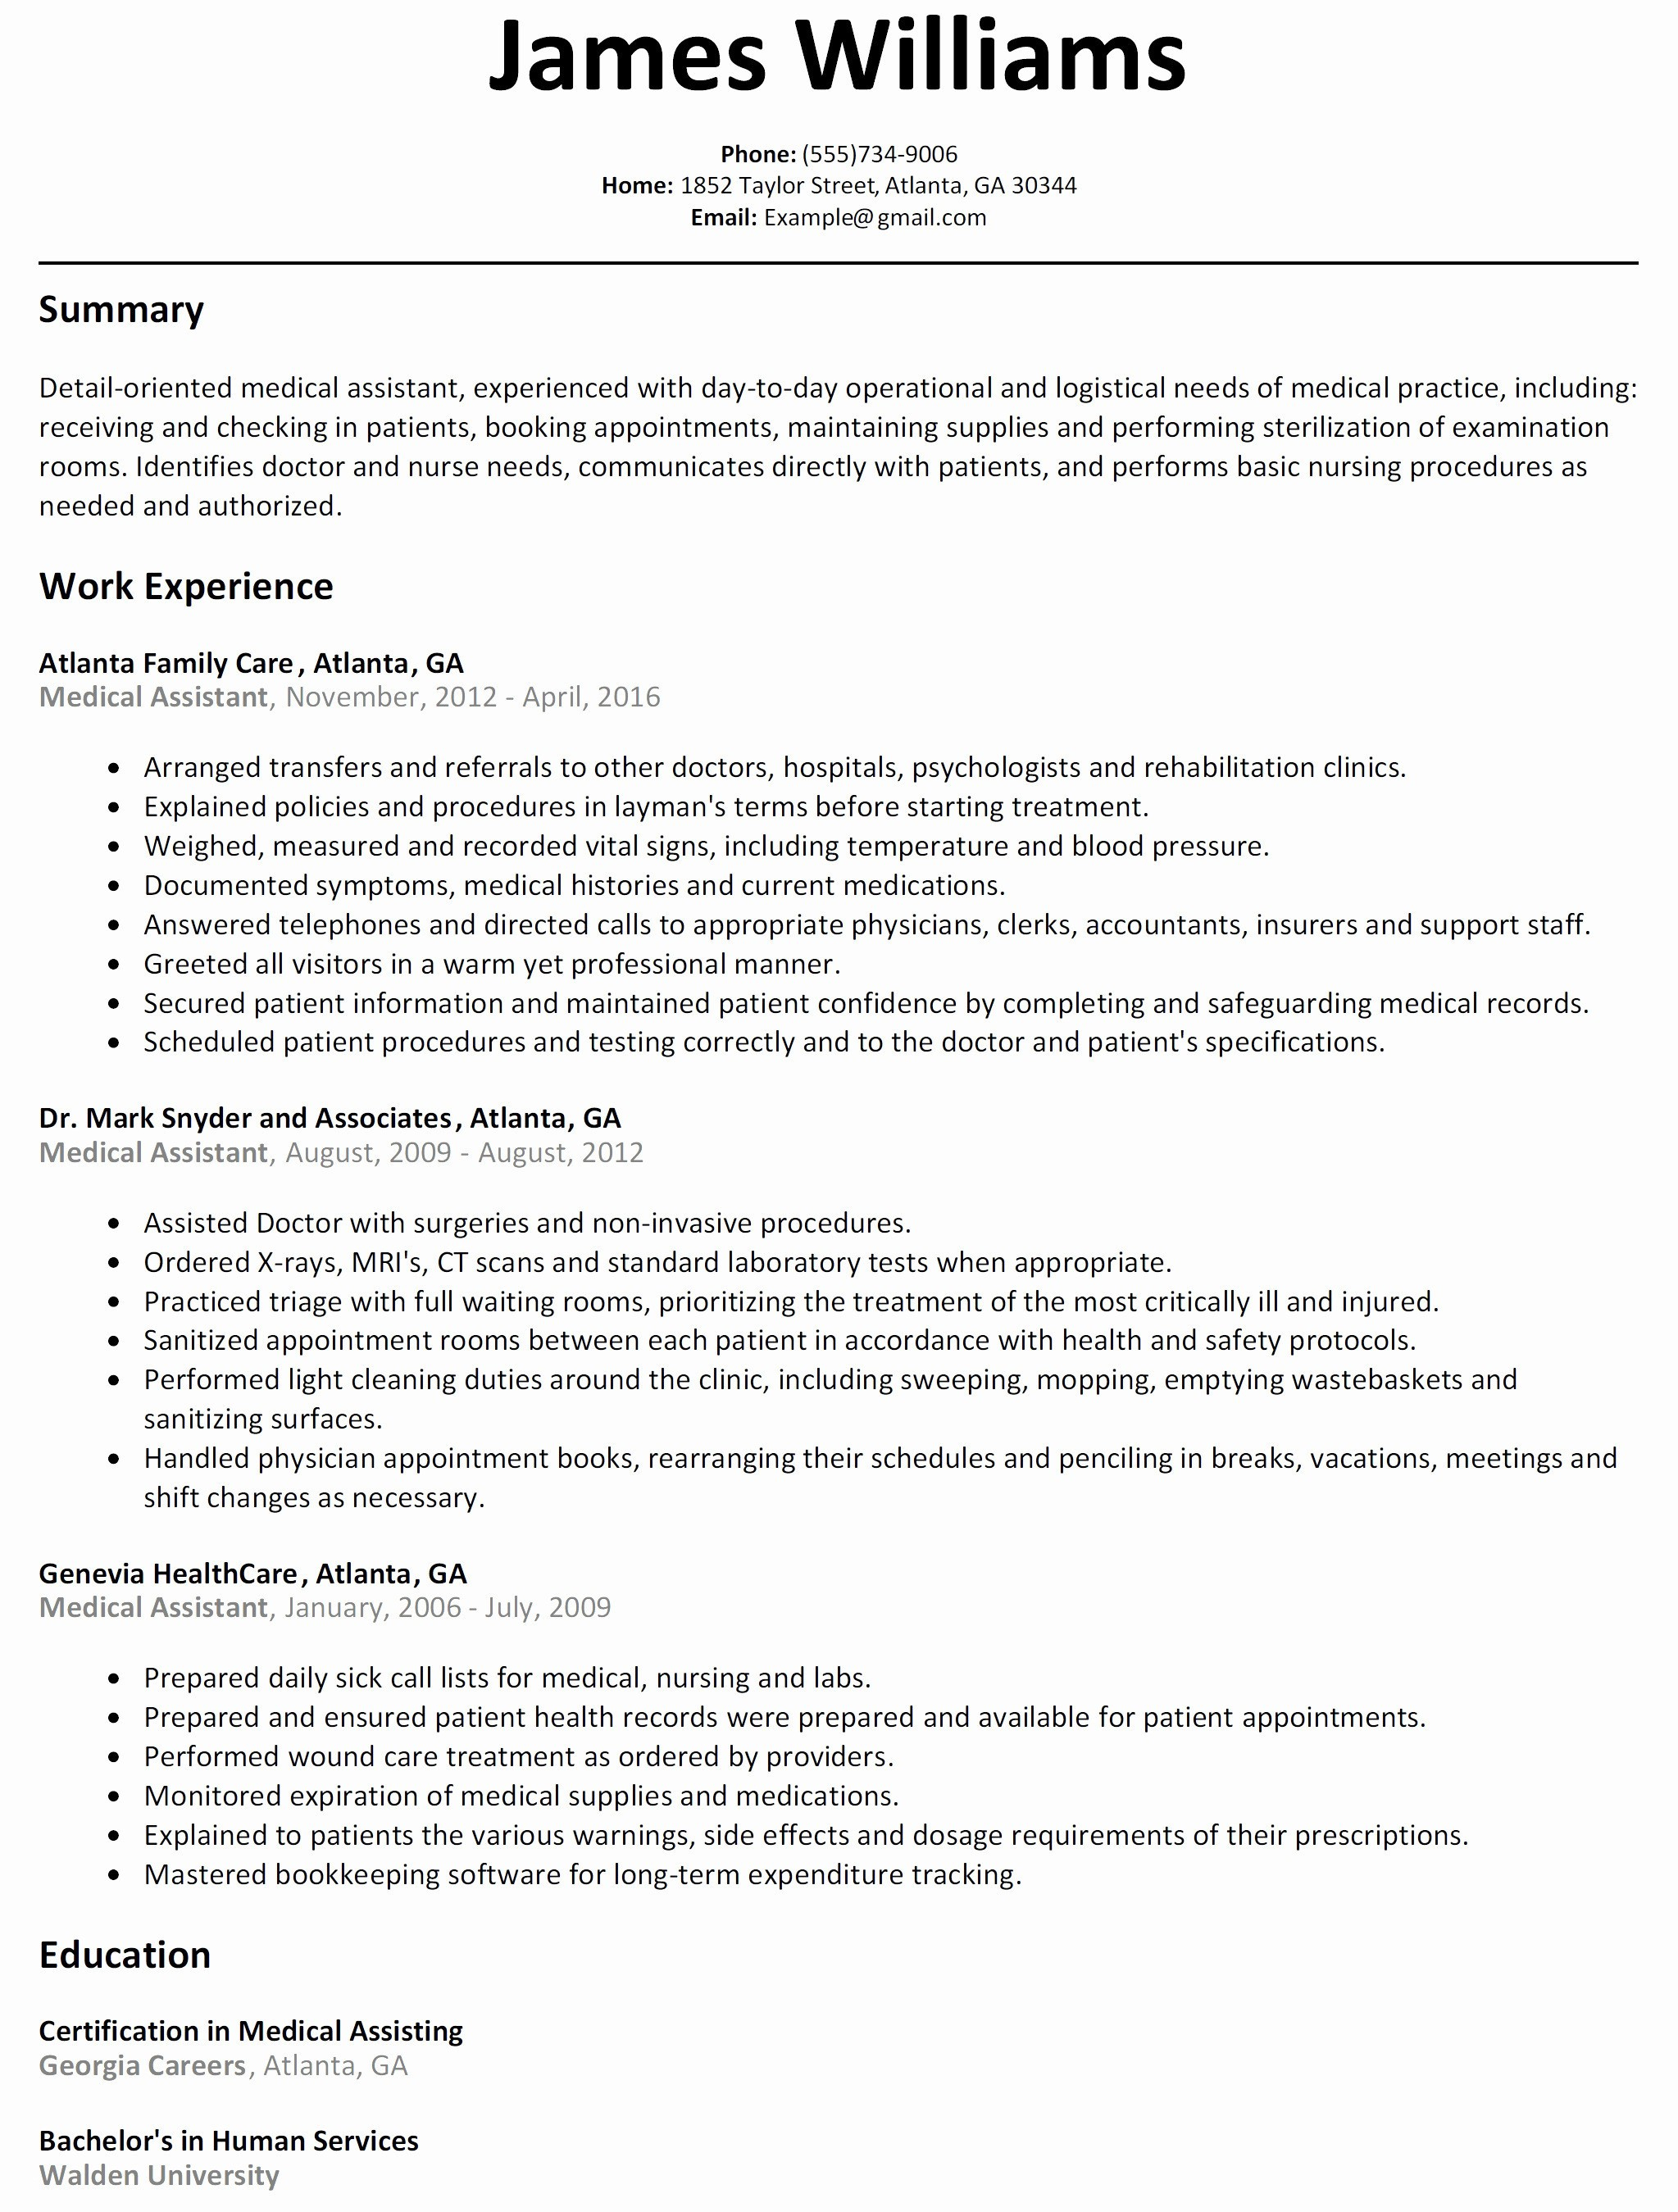 Free Resume Template Download - Free Resume Template Download Lovely Cfo Resume New Template Writing